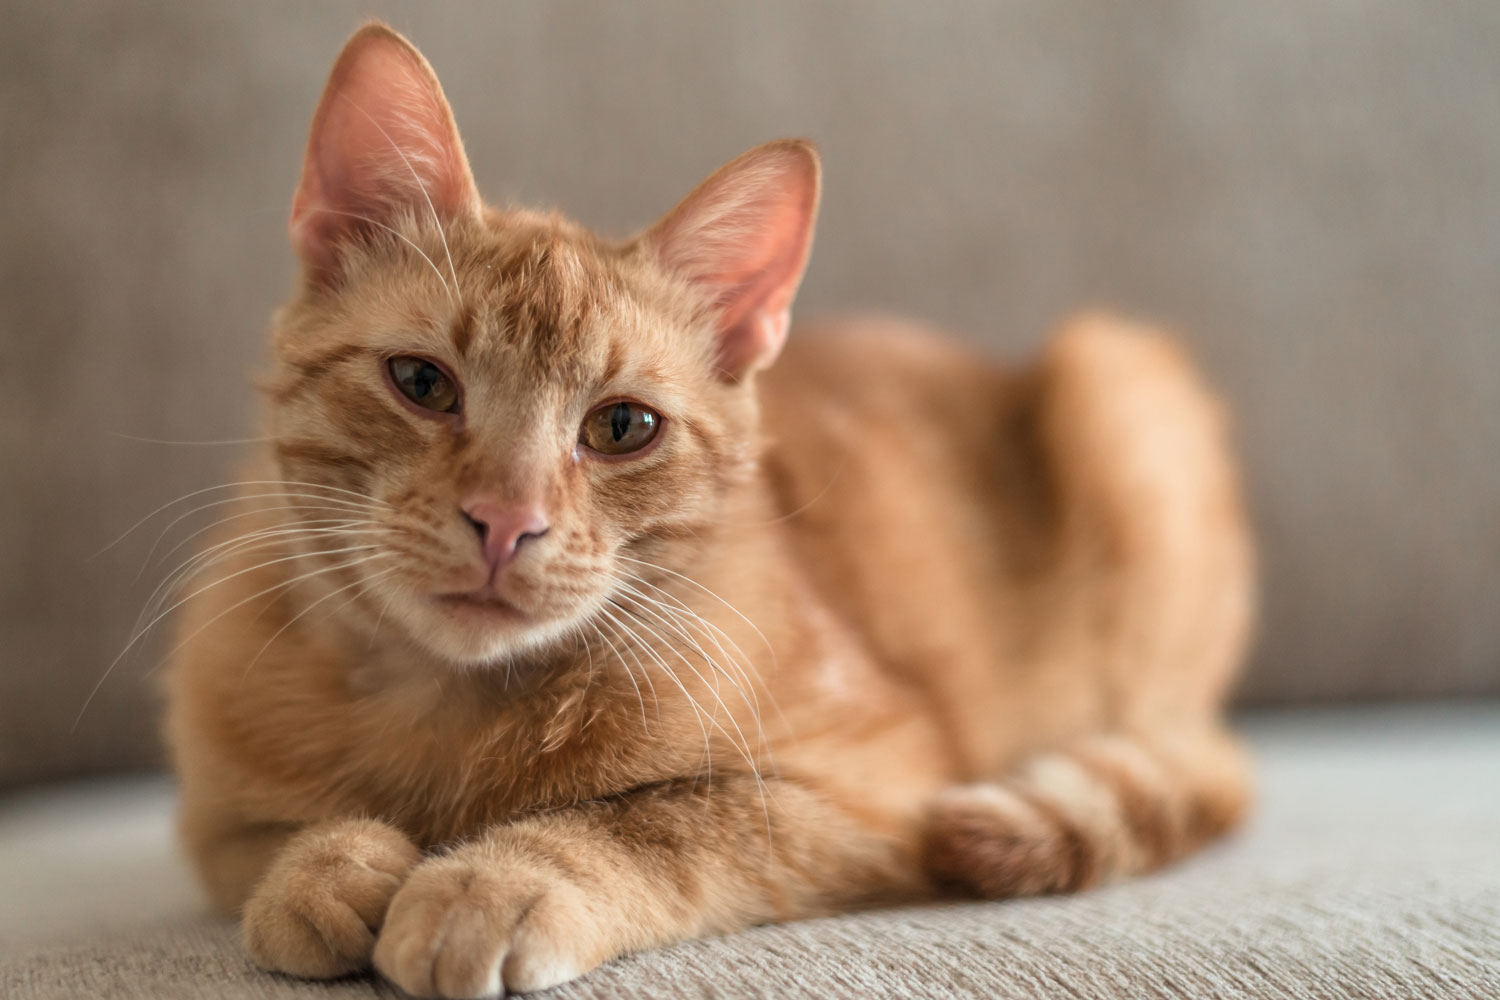 A cute brown haired tabby cat looking at the camera while sitting on the couch